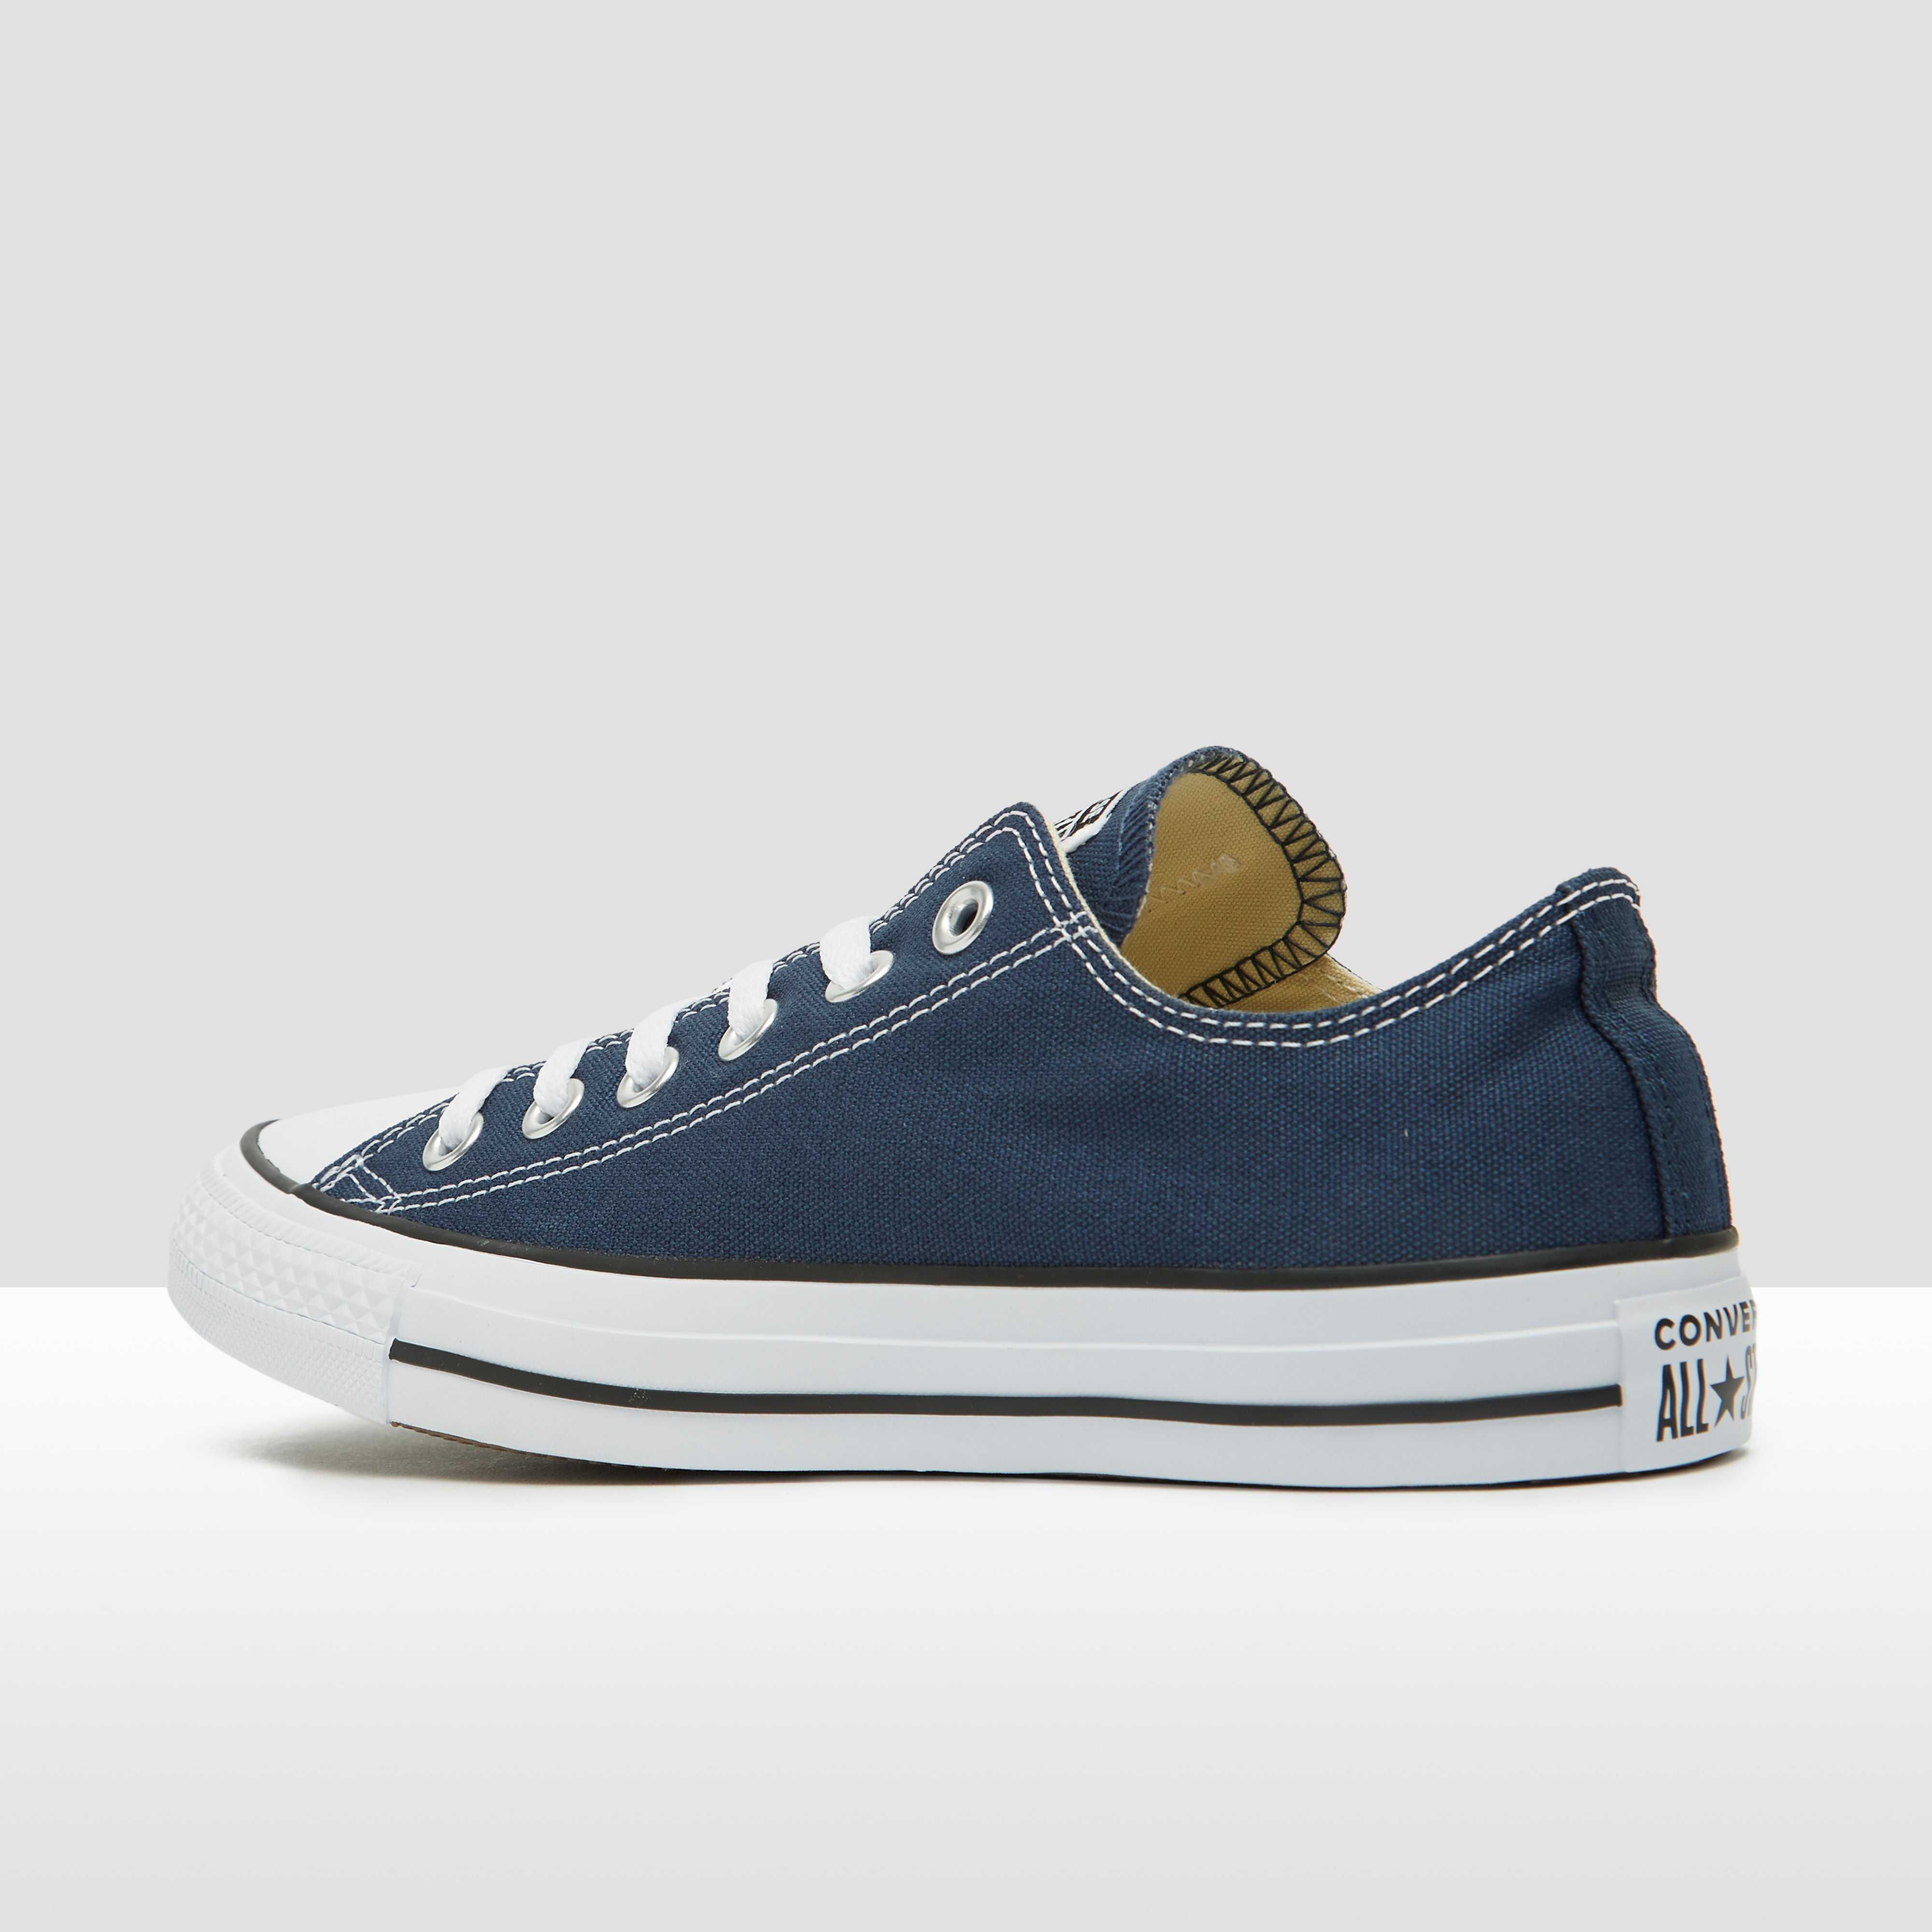 CONVERSE CHUCK TAYLOR ALL STAR CLASSIC LOW SNEAKERS BLAUW